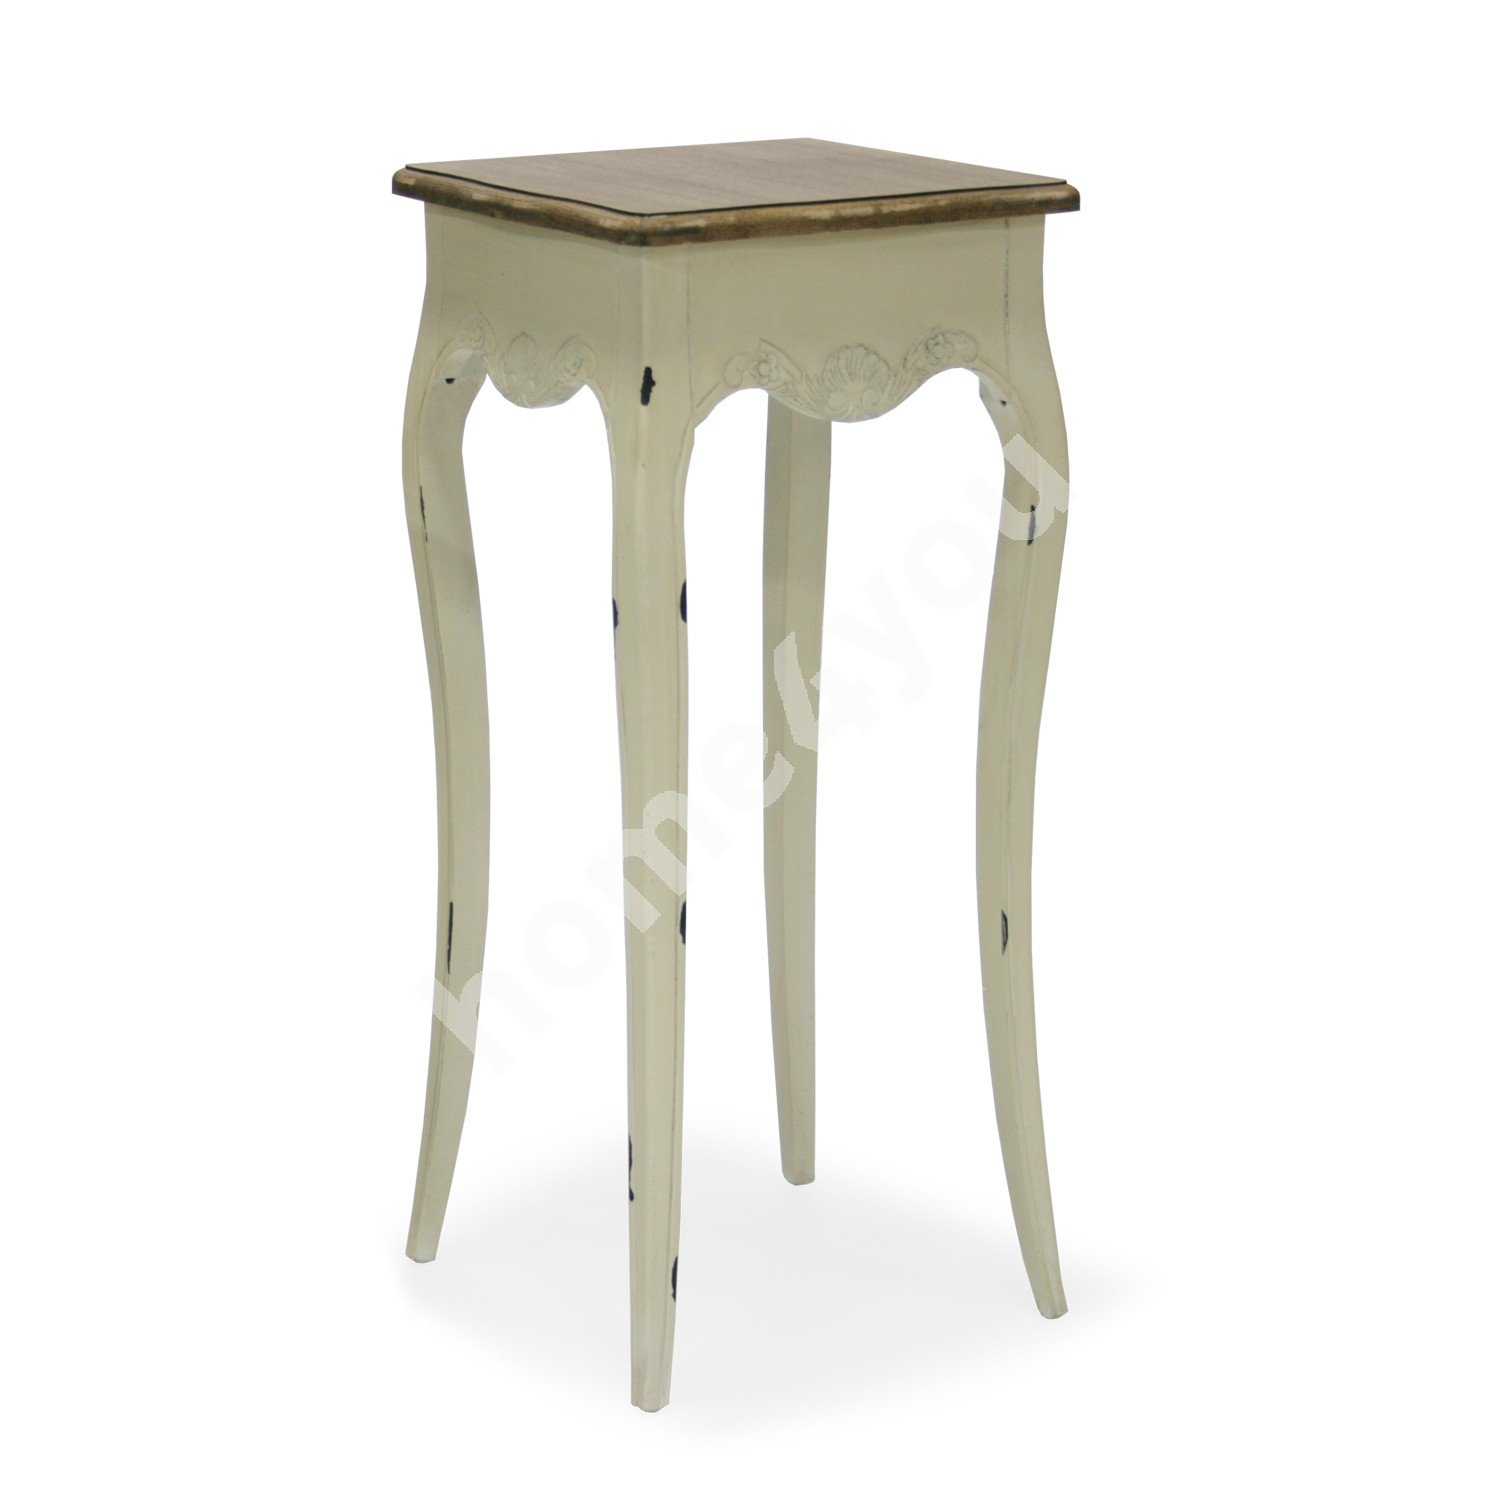 Flower stand SAMIRA-1, 36x36xH81cm, top: MDF, frame and legs: ash, color: antique white / brown